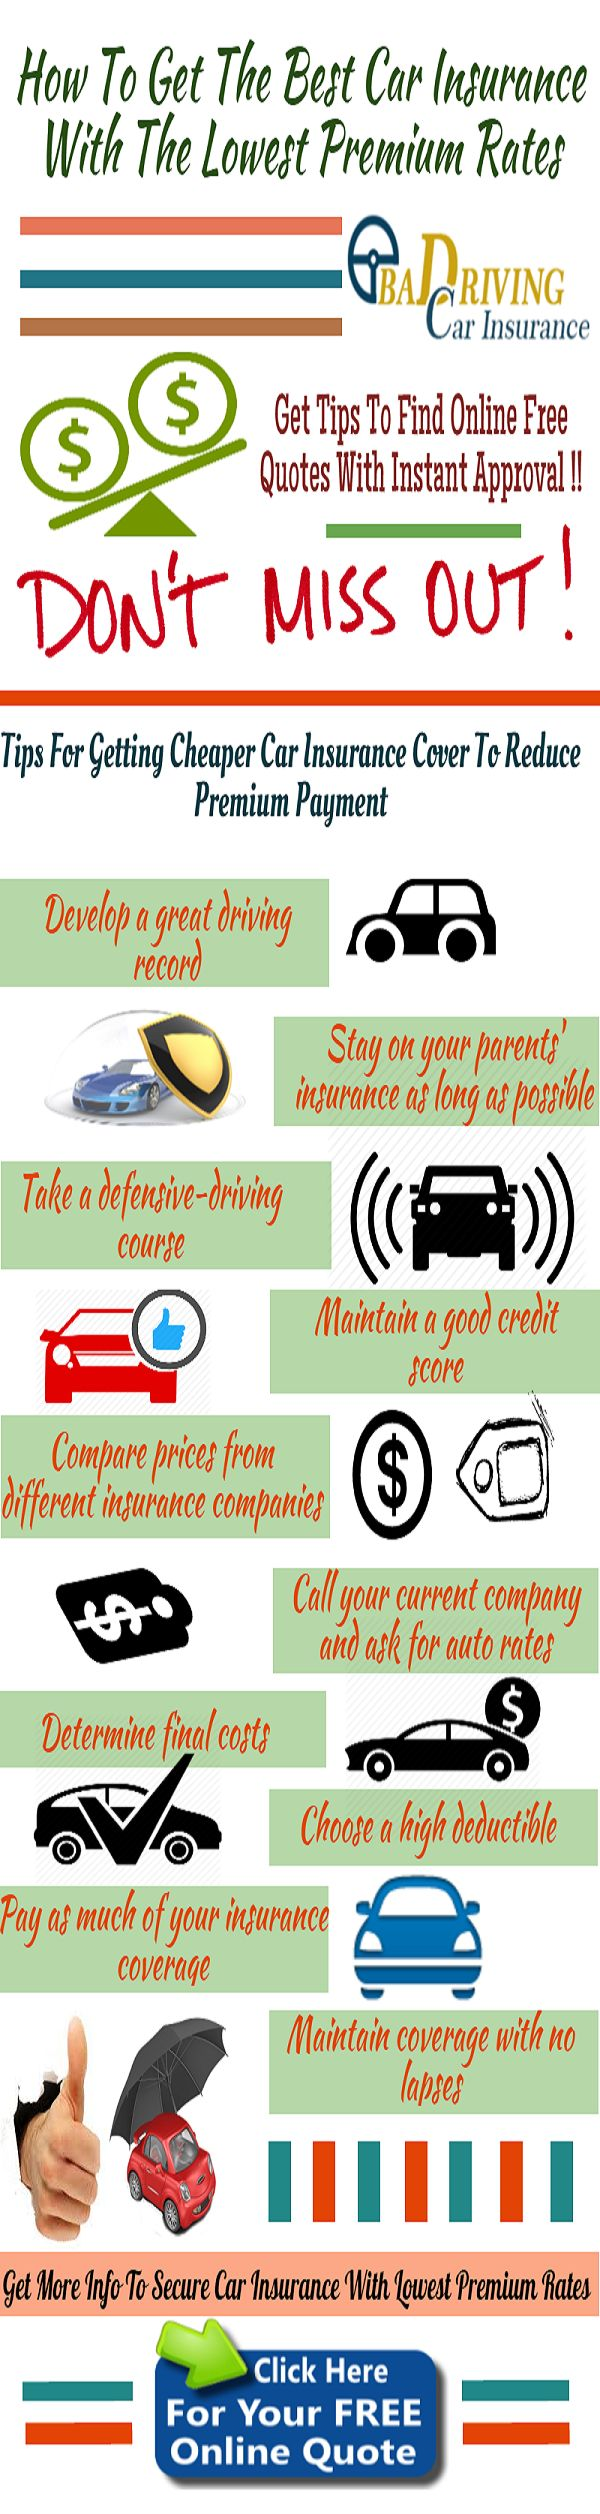 How to get the best car insurance with the lowest premium rates